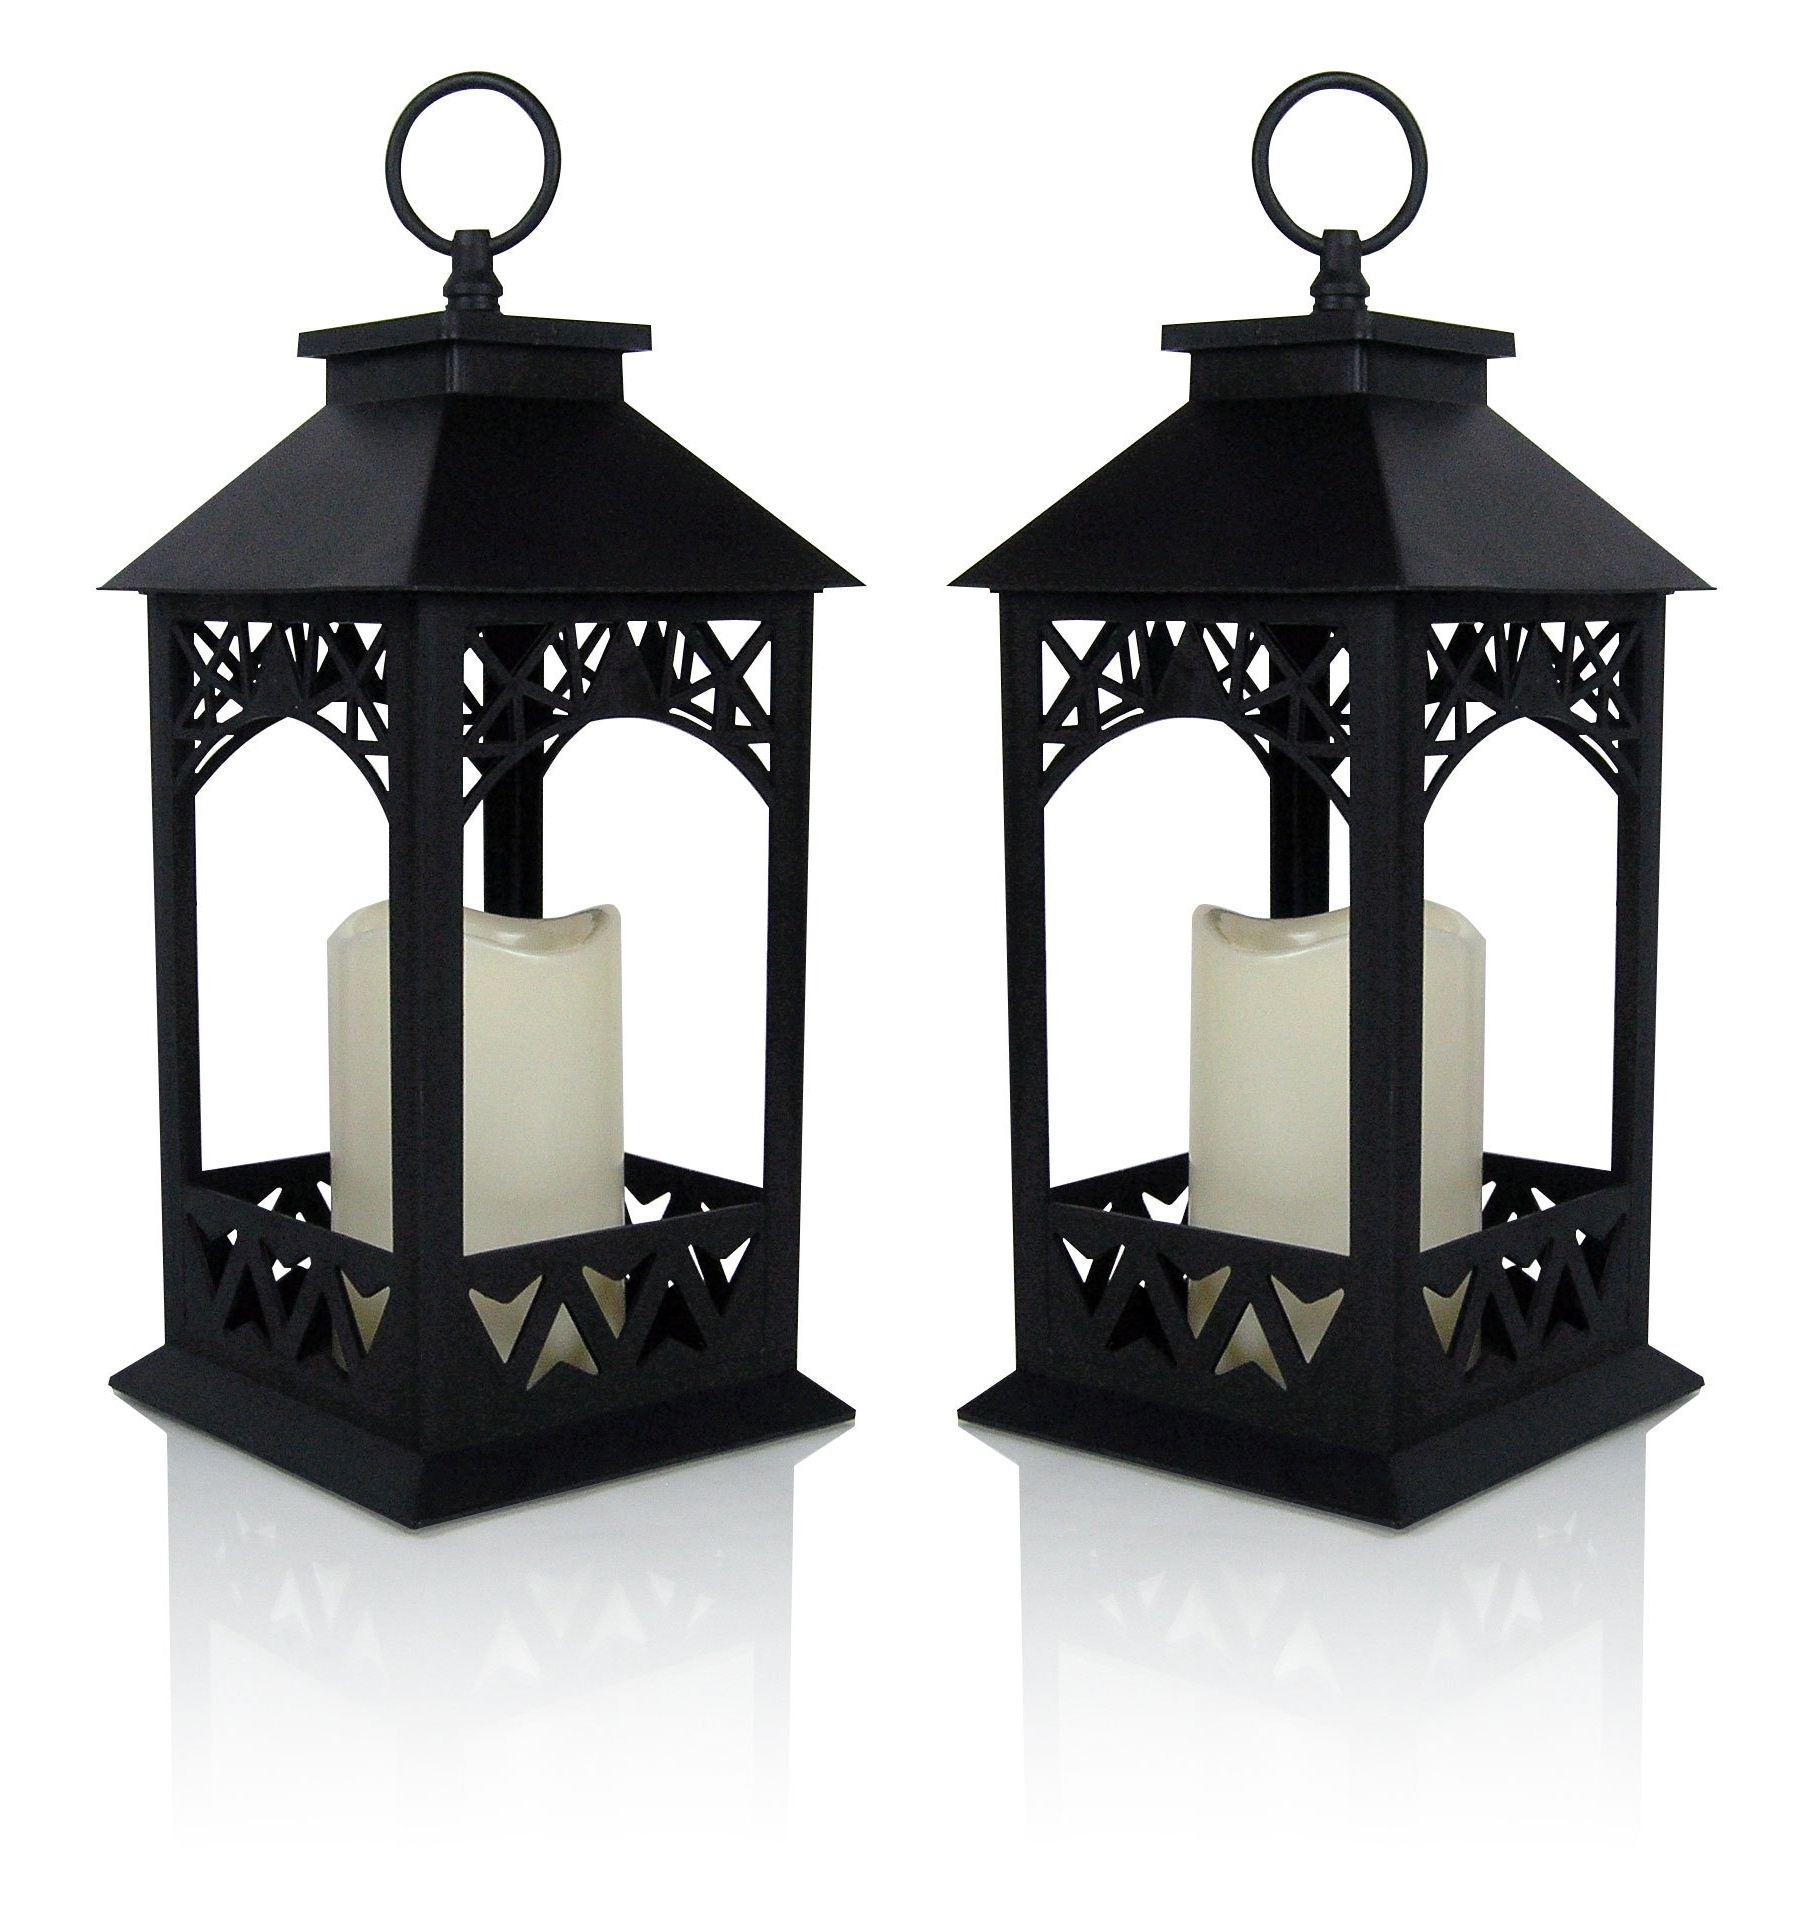 Cheap Outdoor Lanterns Candle, Find Outdoor Lanterns Candle Deals On Intended For Widely Used Outdoor Timer Lanterns (Gallery 6 of 20)